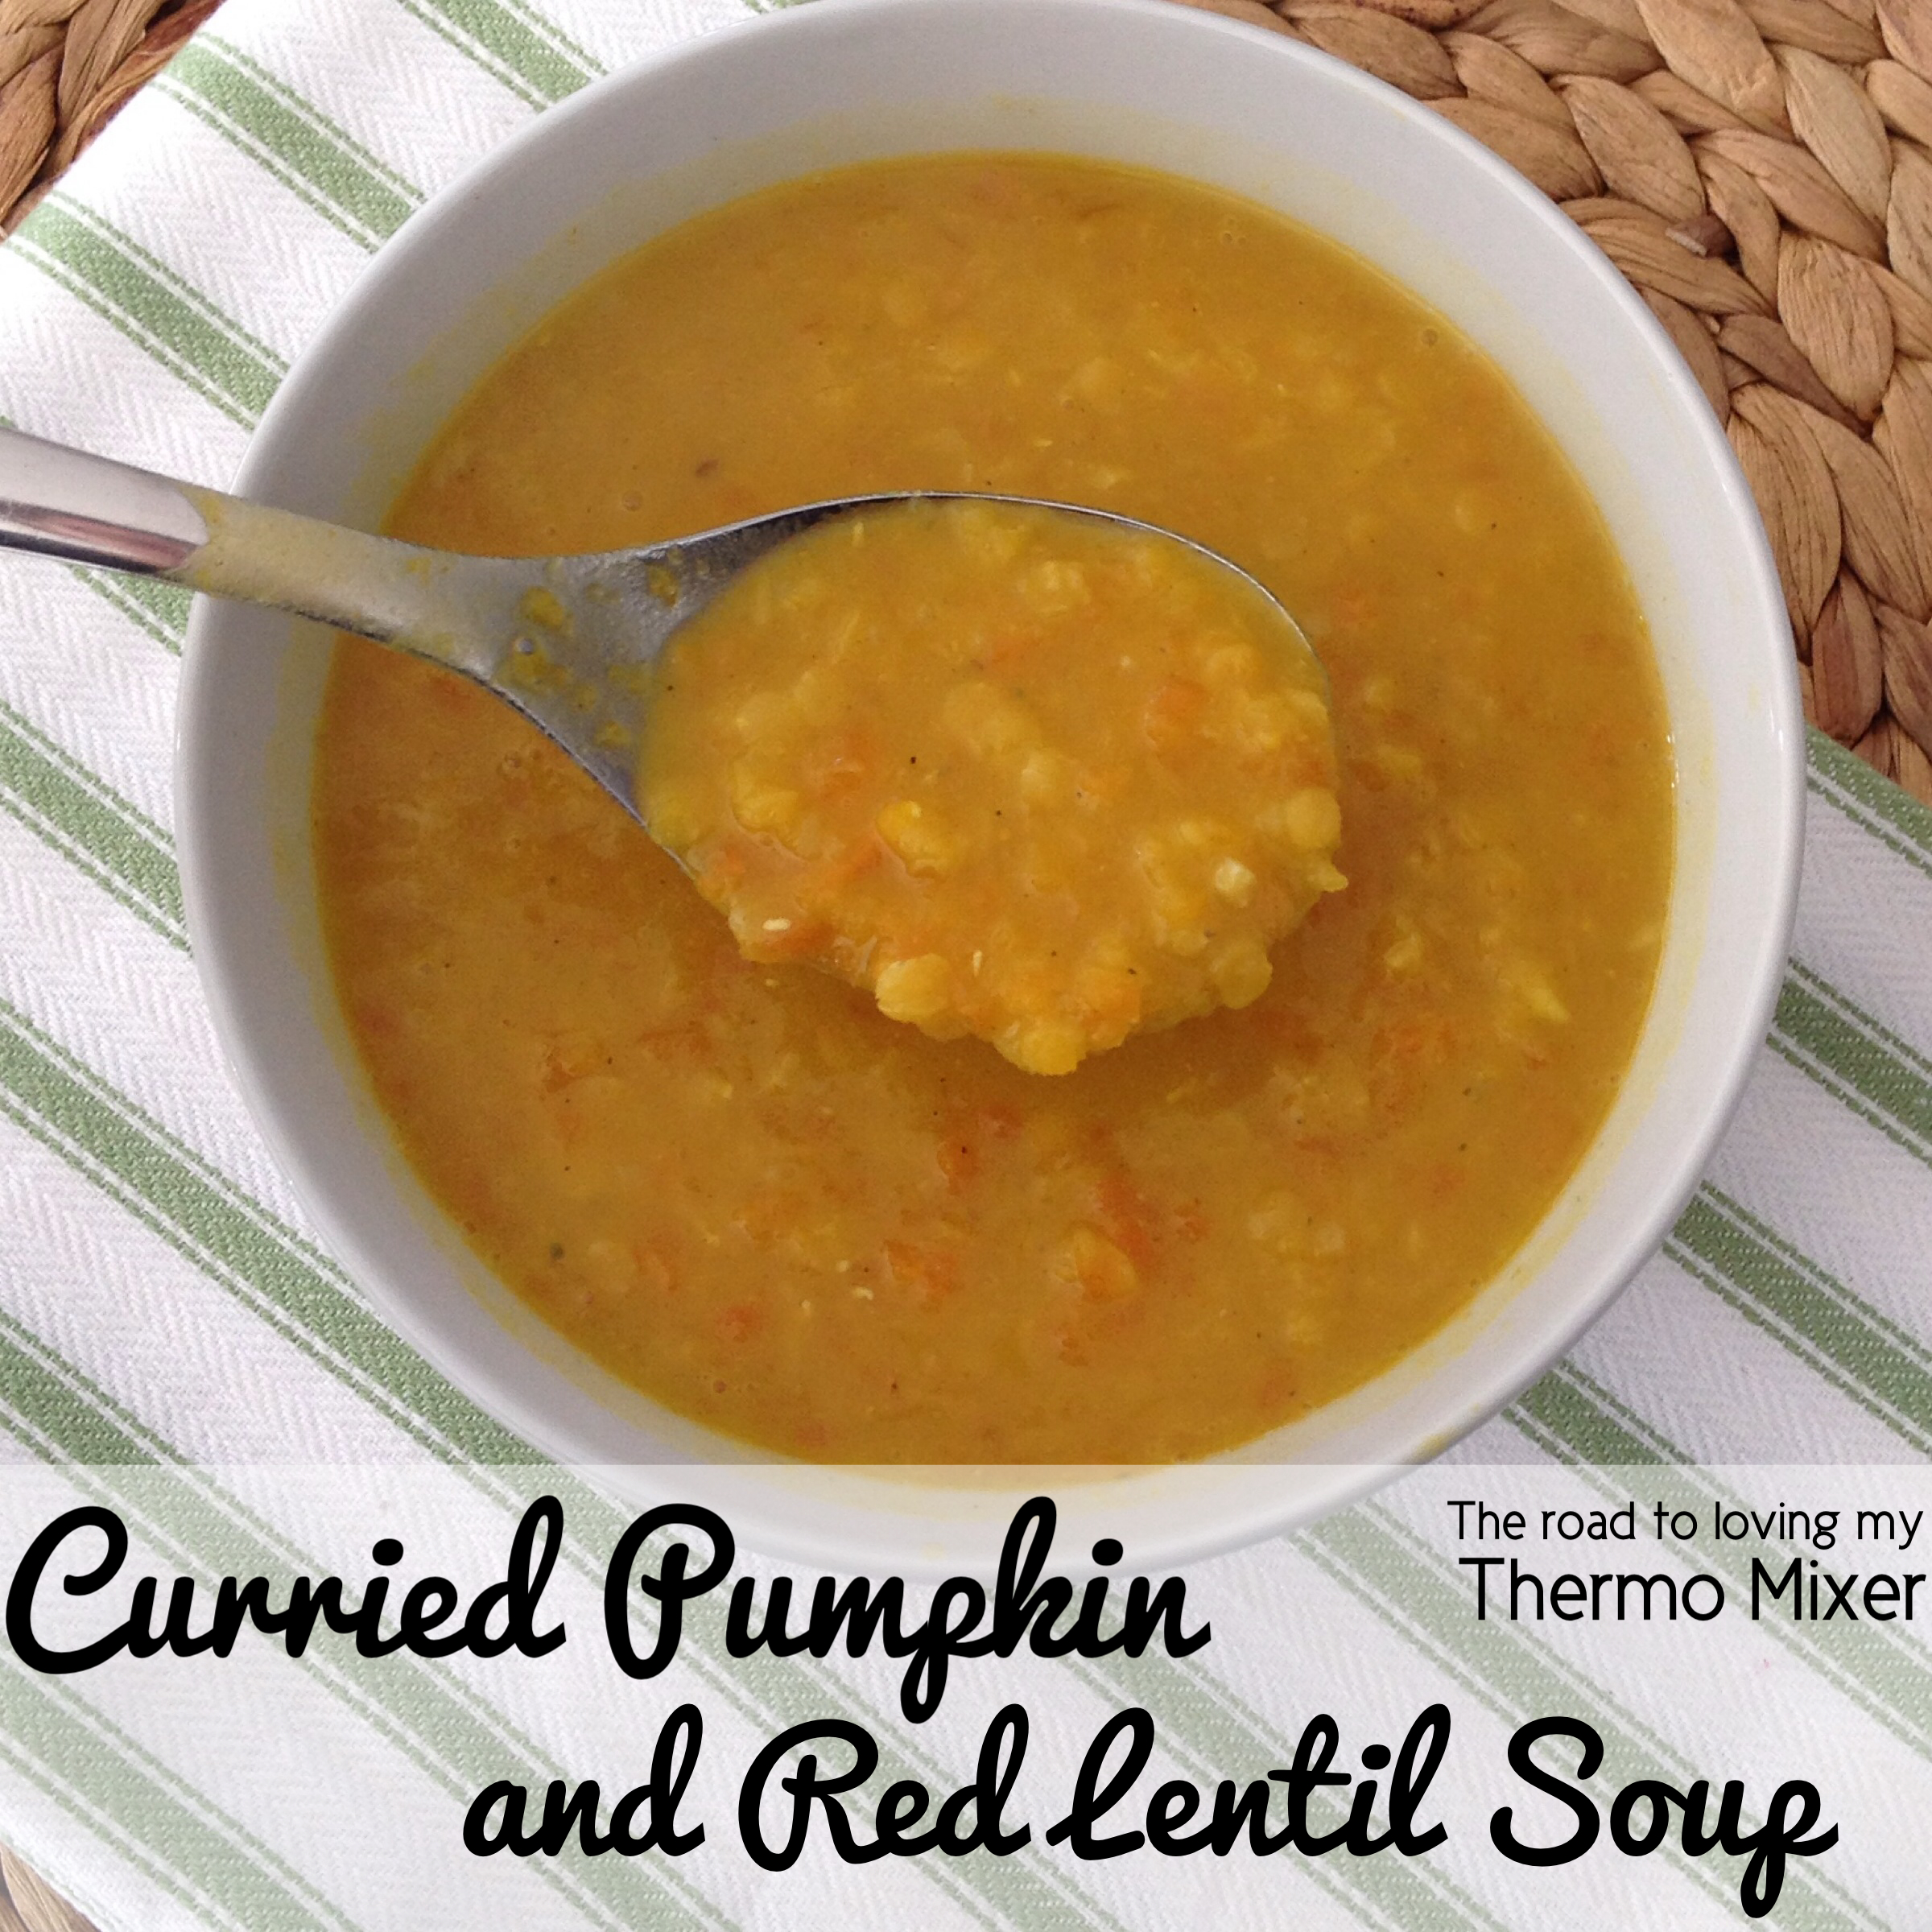 Curried Pumpkin and Red Lentil Soup | The Road to Loving My Thermo ...